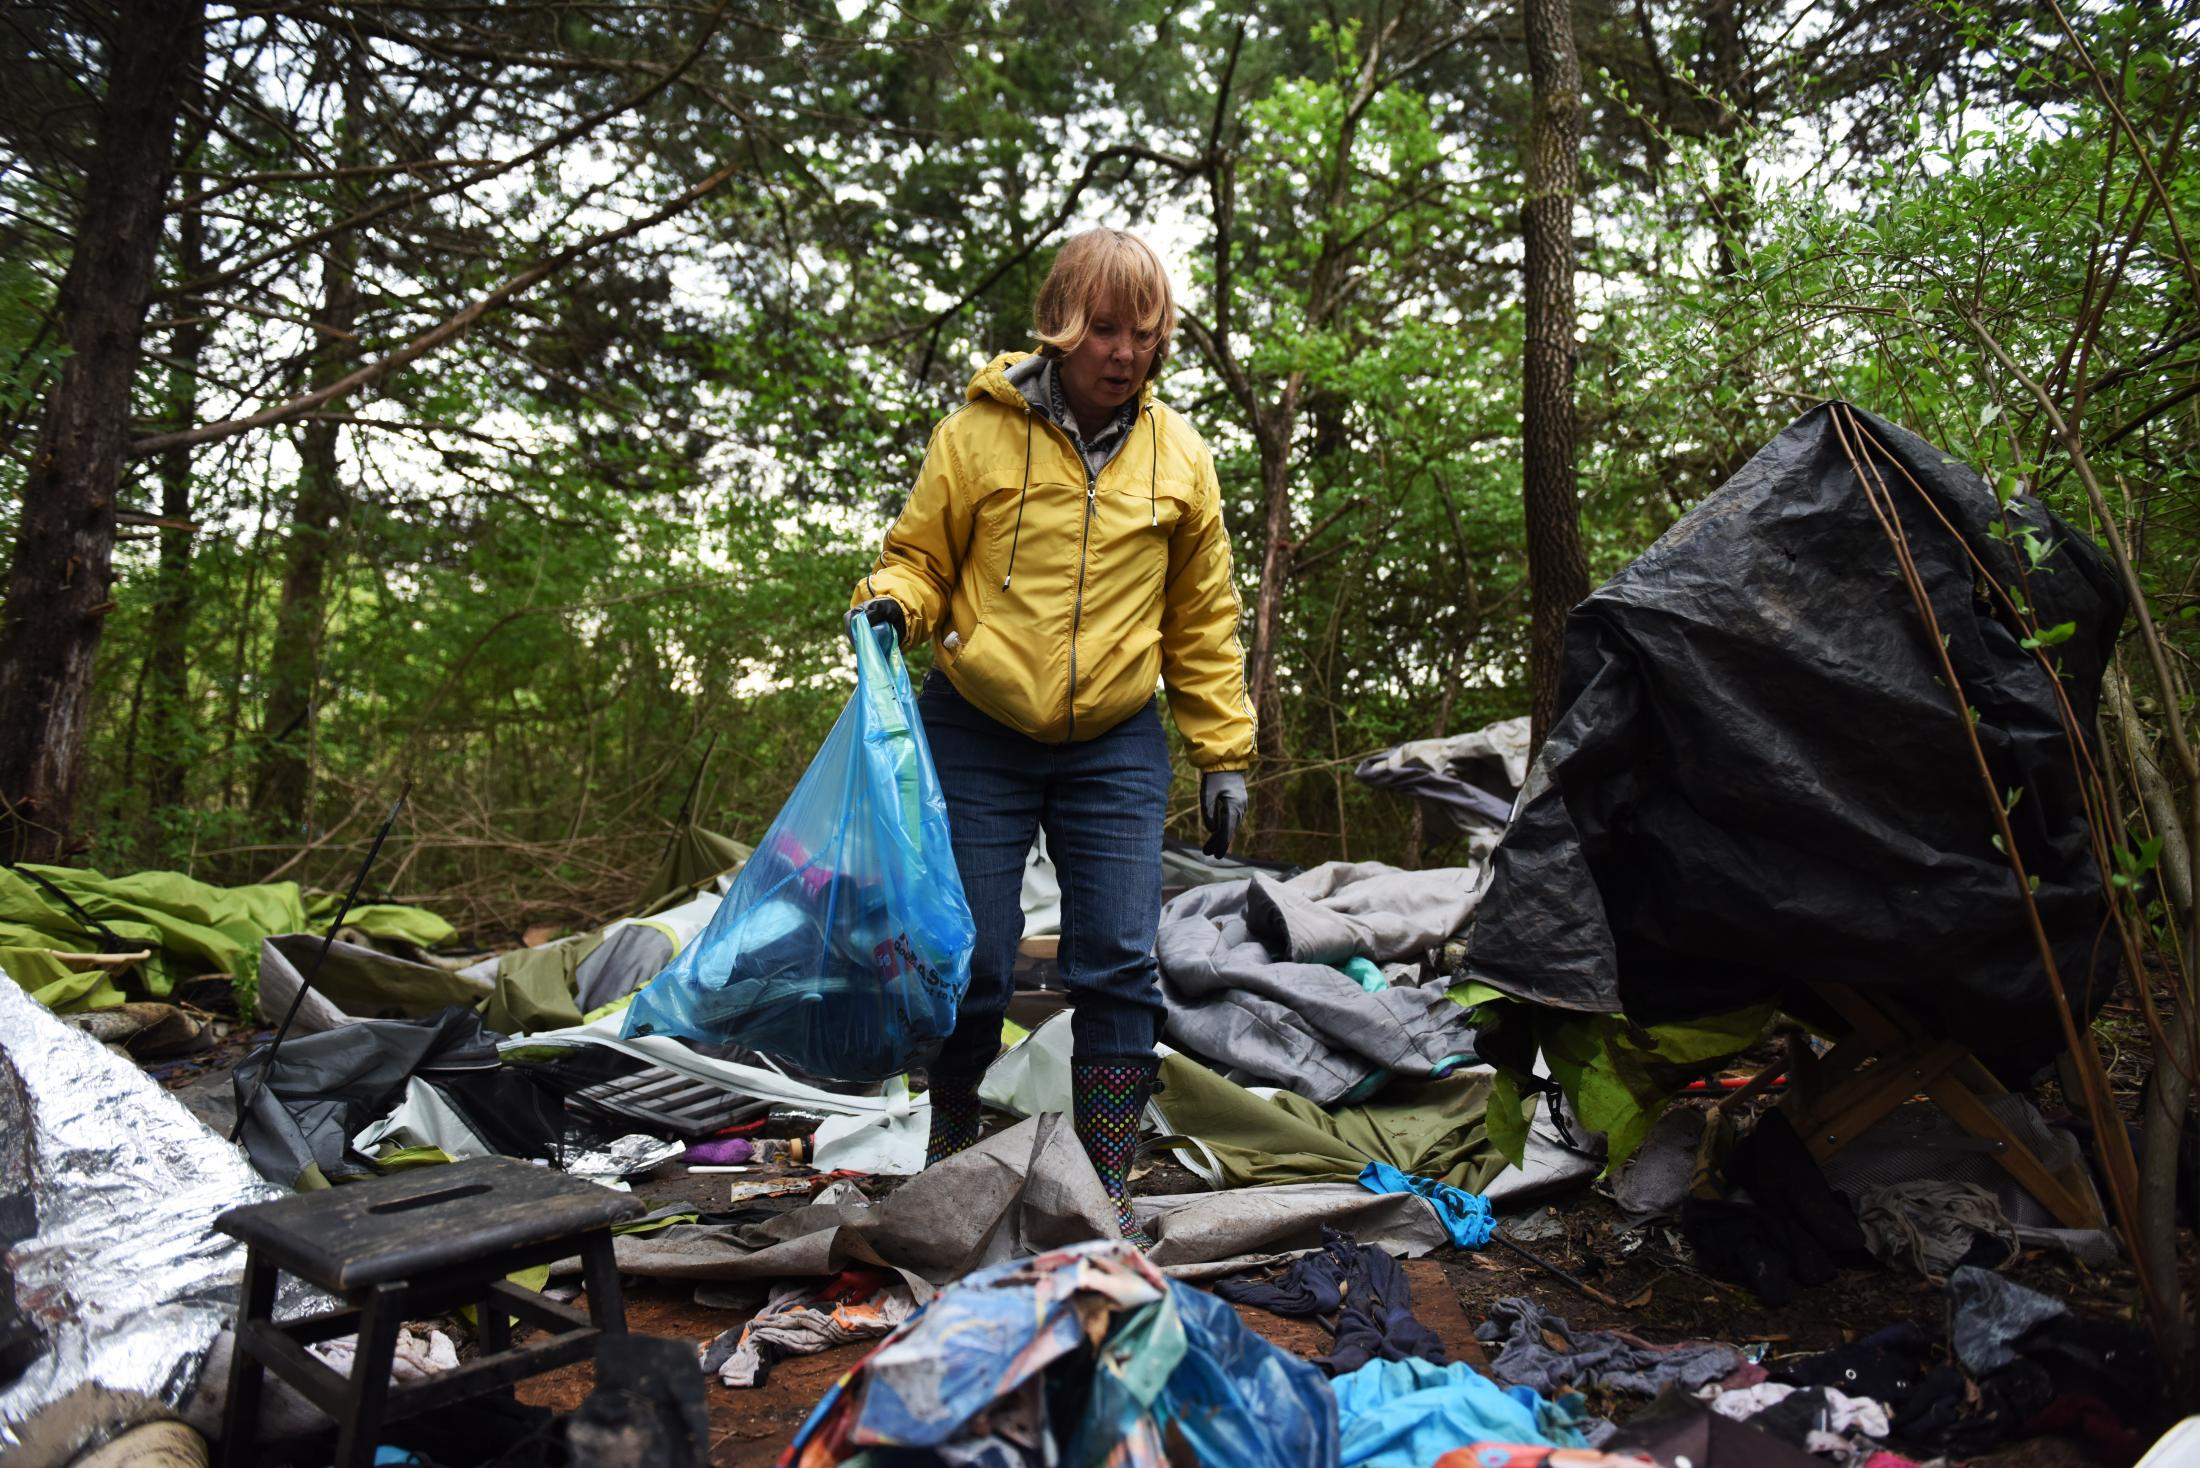 Flo Osborn steps through a homeless campsite in Columbia. Osborn was among a group of volunteers who led the effort to clean up abandoned campsites. A mix of volunteers pitched in, including a school board candidate, the John Brown Gun Club, a city councilman, members of Operation Safe Winter and some of the community's unhoused neighbors.